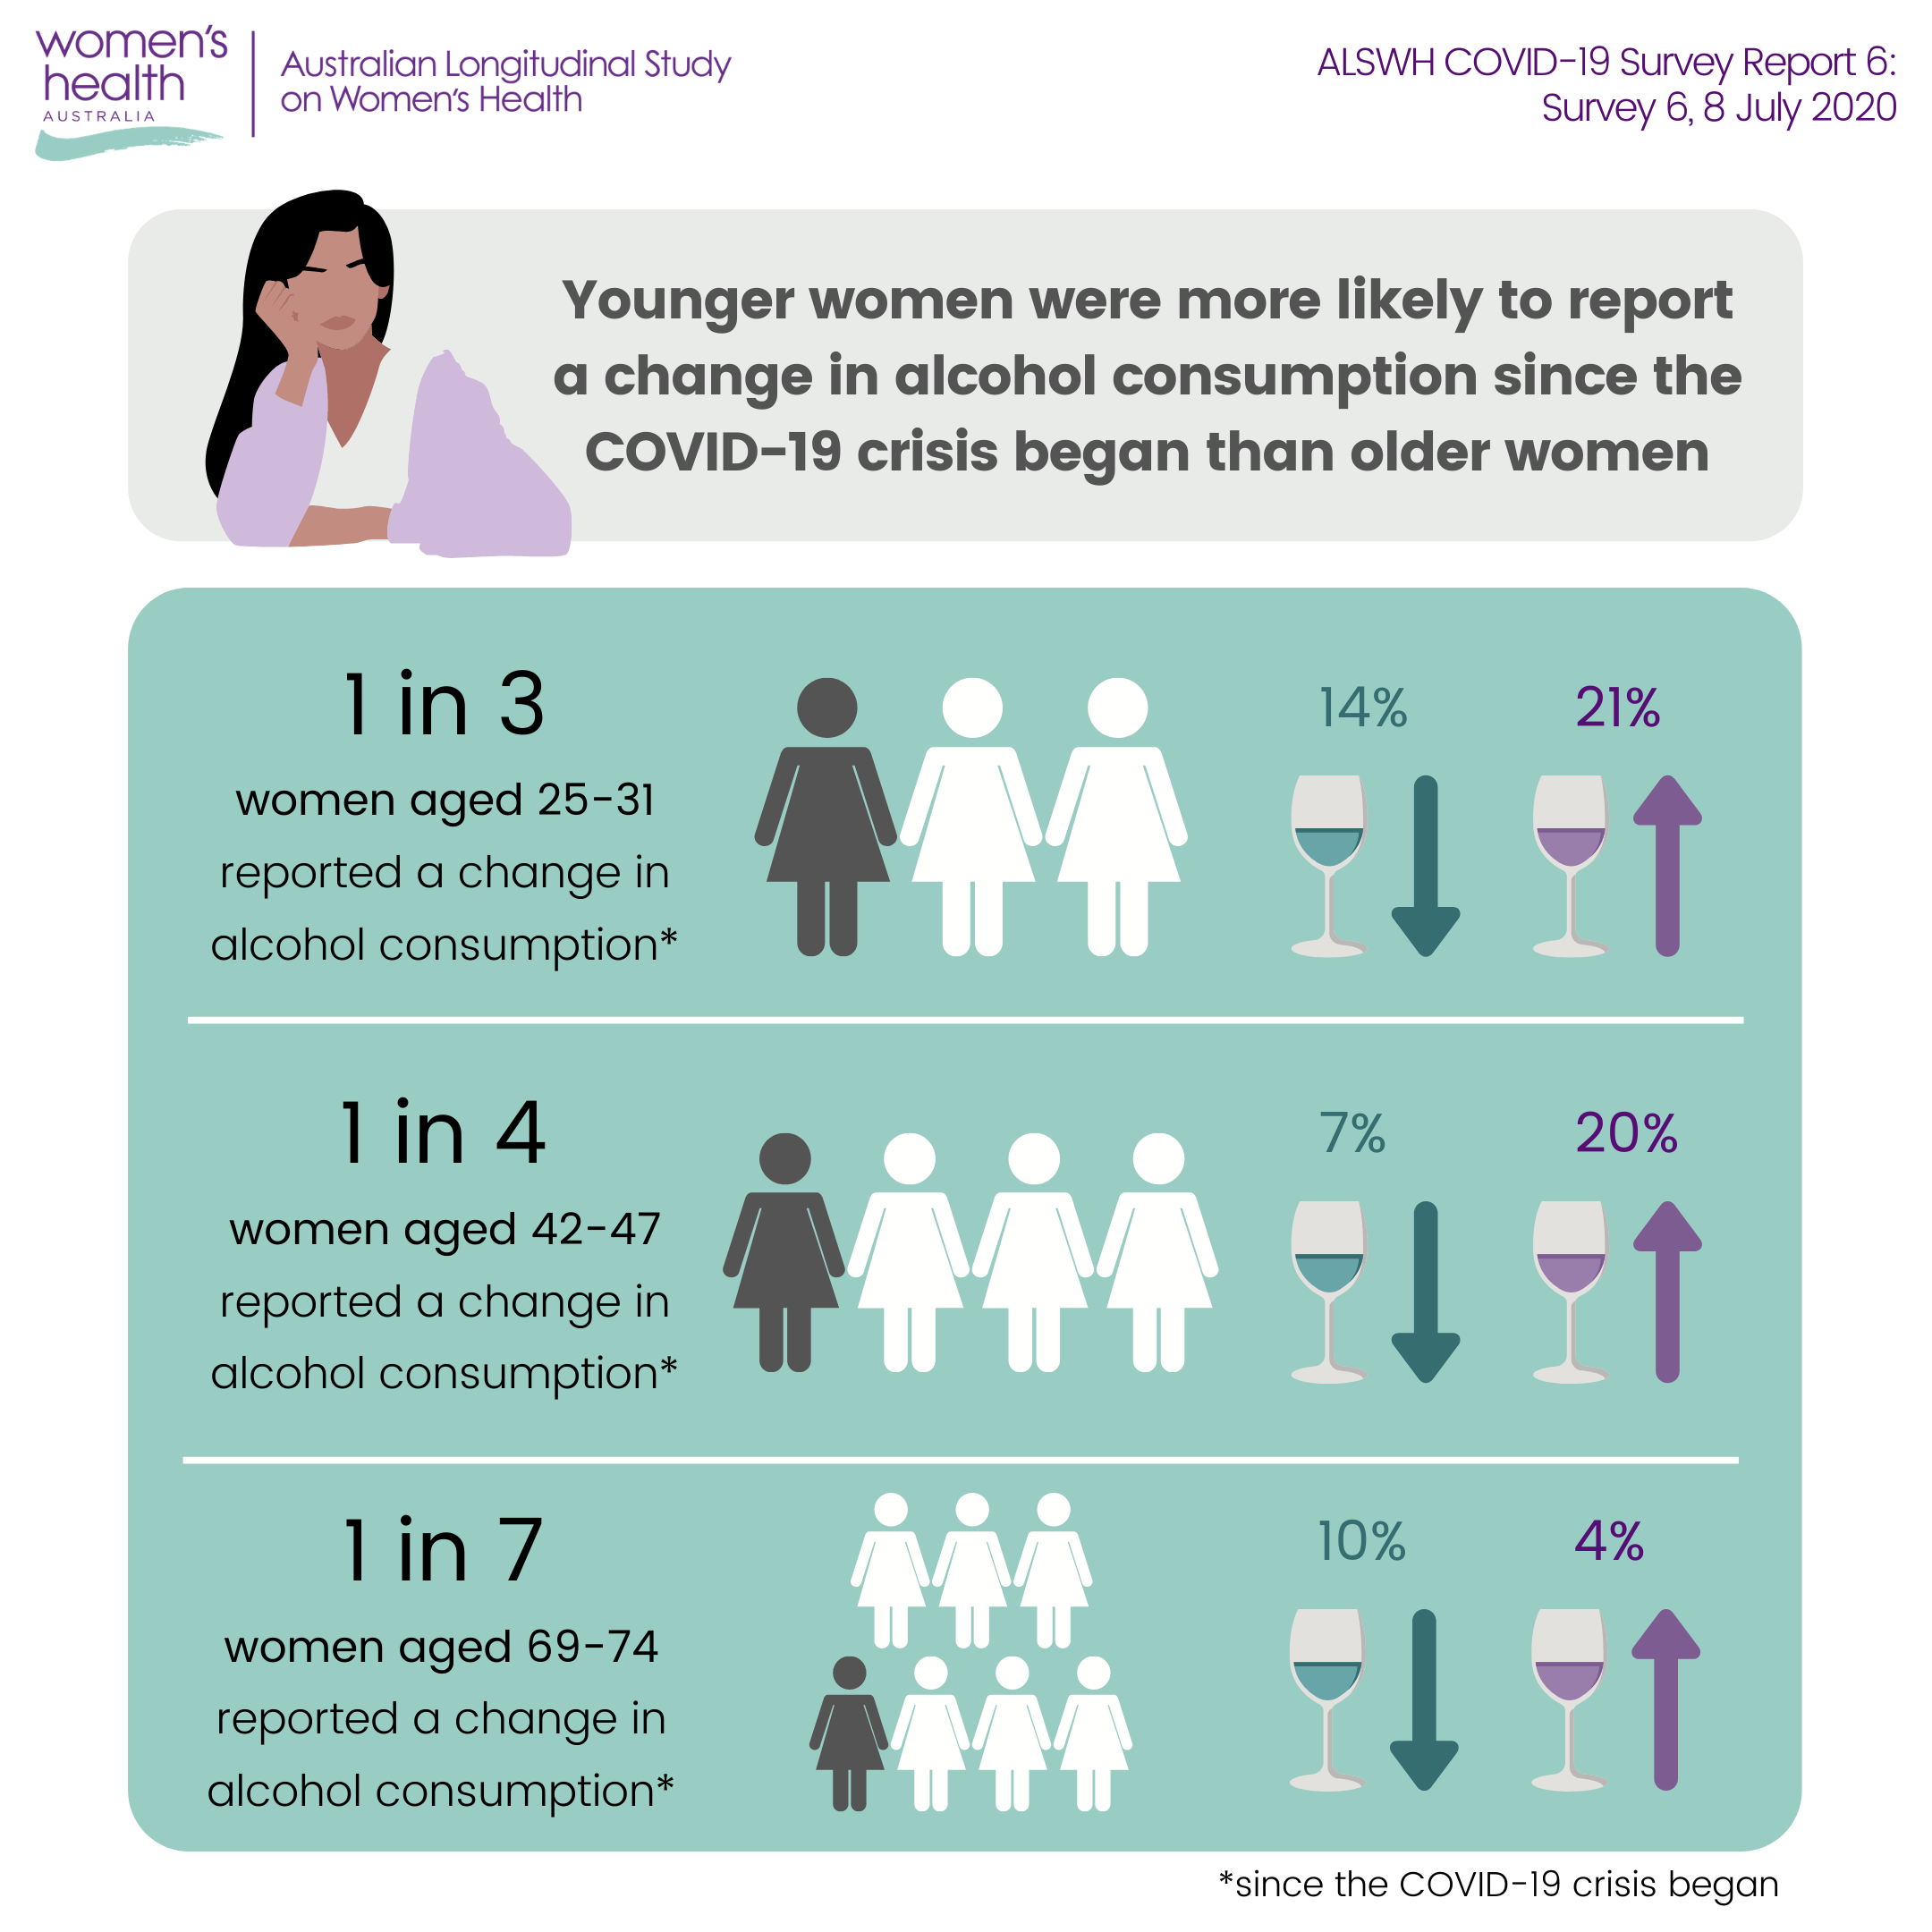 Younger women were more likely to report a change in alcohol consumption since the covid-19 crisis began than older women. 1 in 3 women aged 25-31 reported a change (14% decreased, 21% increased). 1 in 4 women aged 42-47 reported a change (7% decreased, 20% increased). 1 in 7 women aged 69-74 repoted a change (10% decreased, 4% increased).